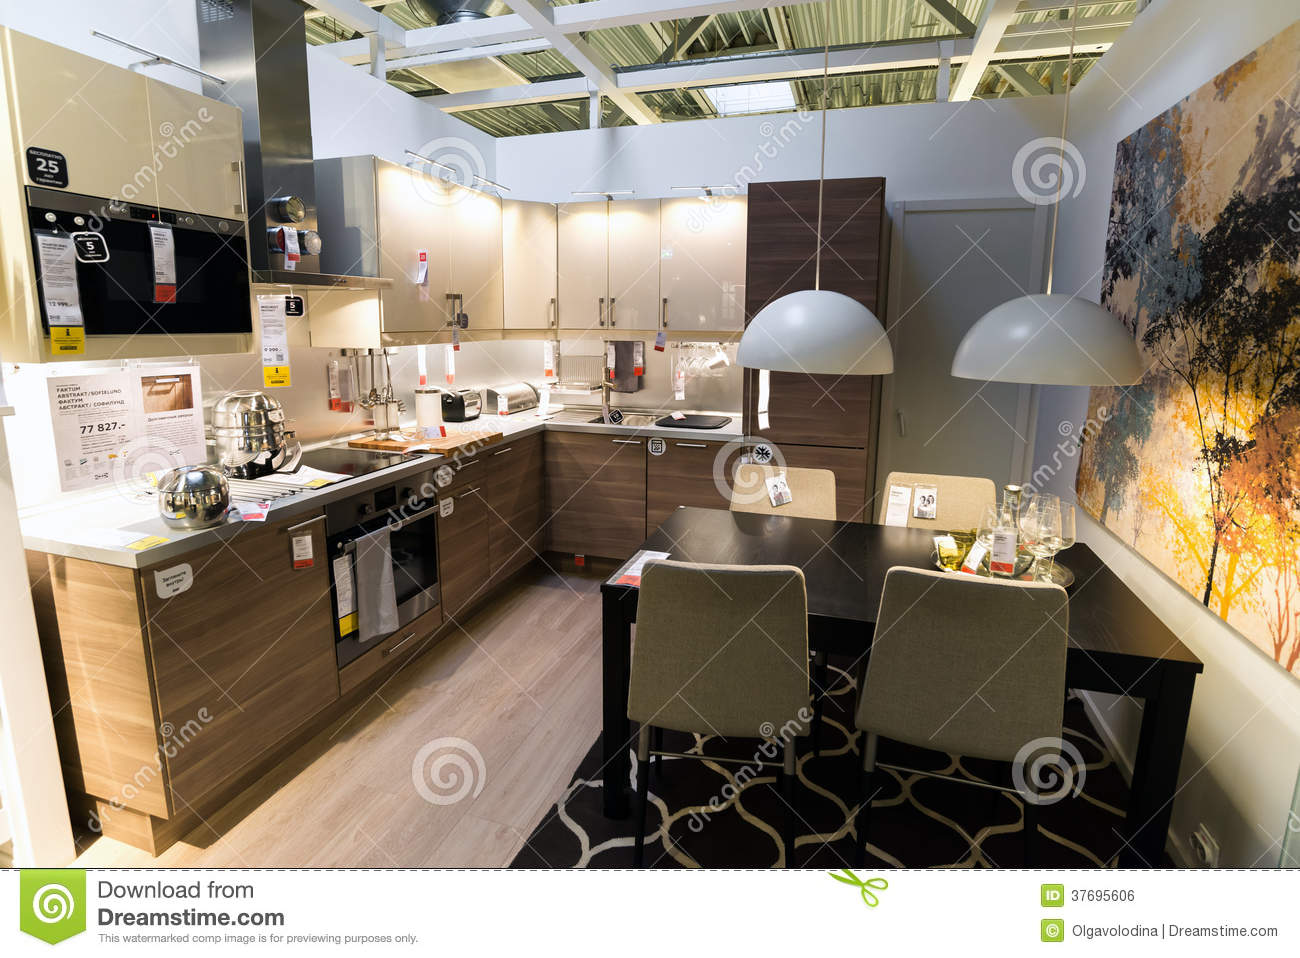 kitchen in the furniture store ikea editorial photo